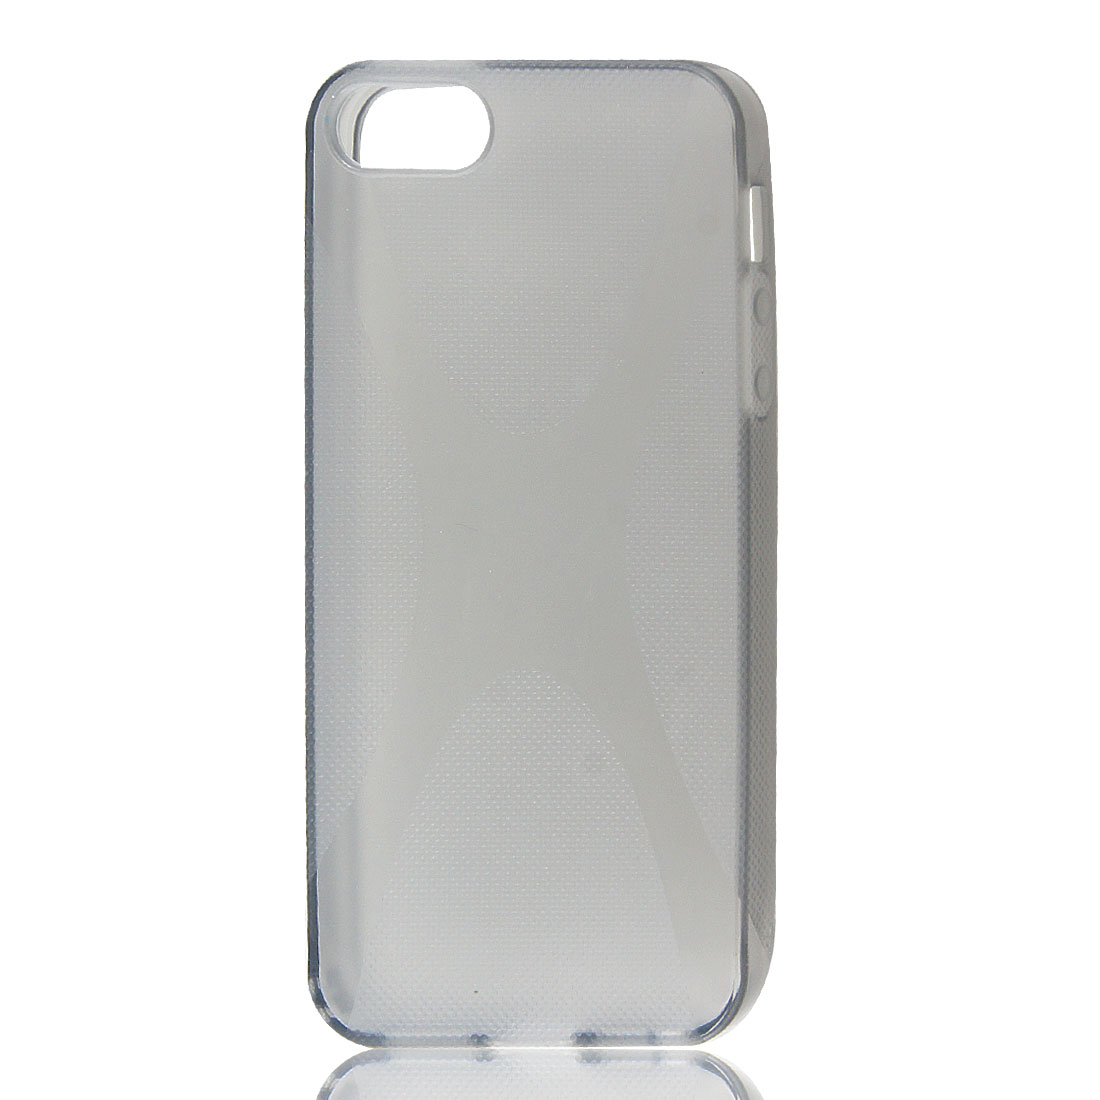 Textured Anti-slip Gray Soft Plastic Cover Case for iPhone 5 5G